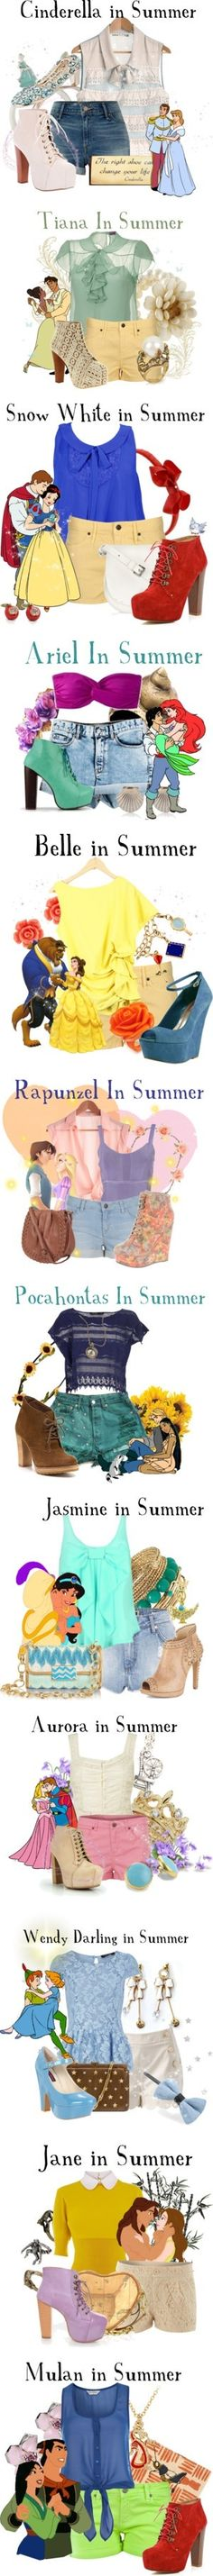 If Disney princesses would dress for summer.